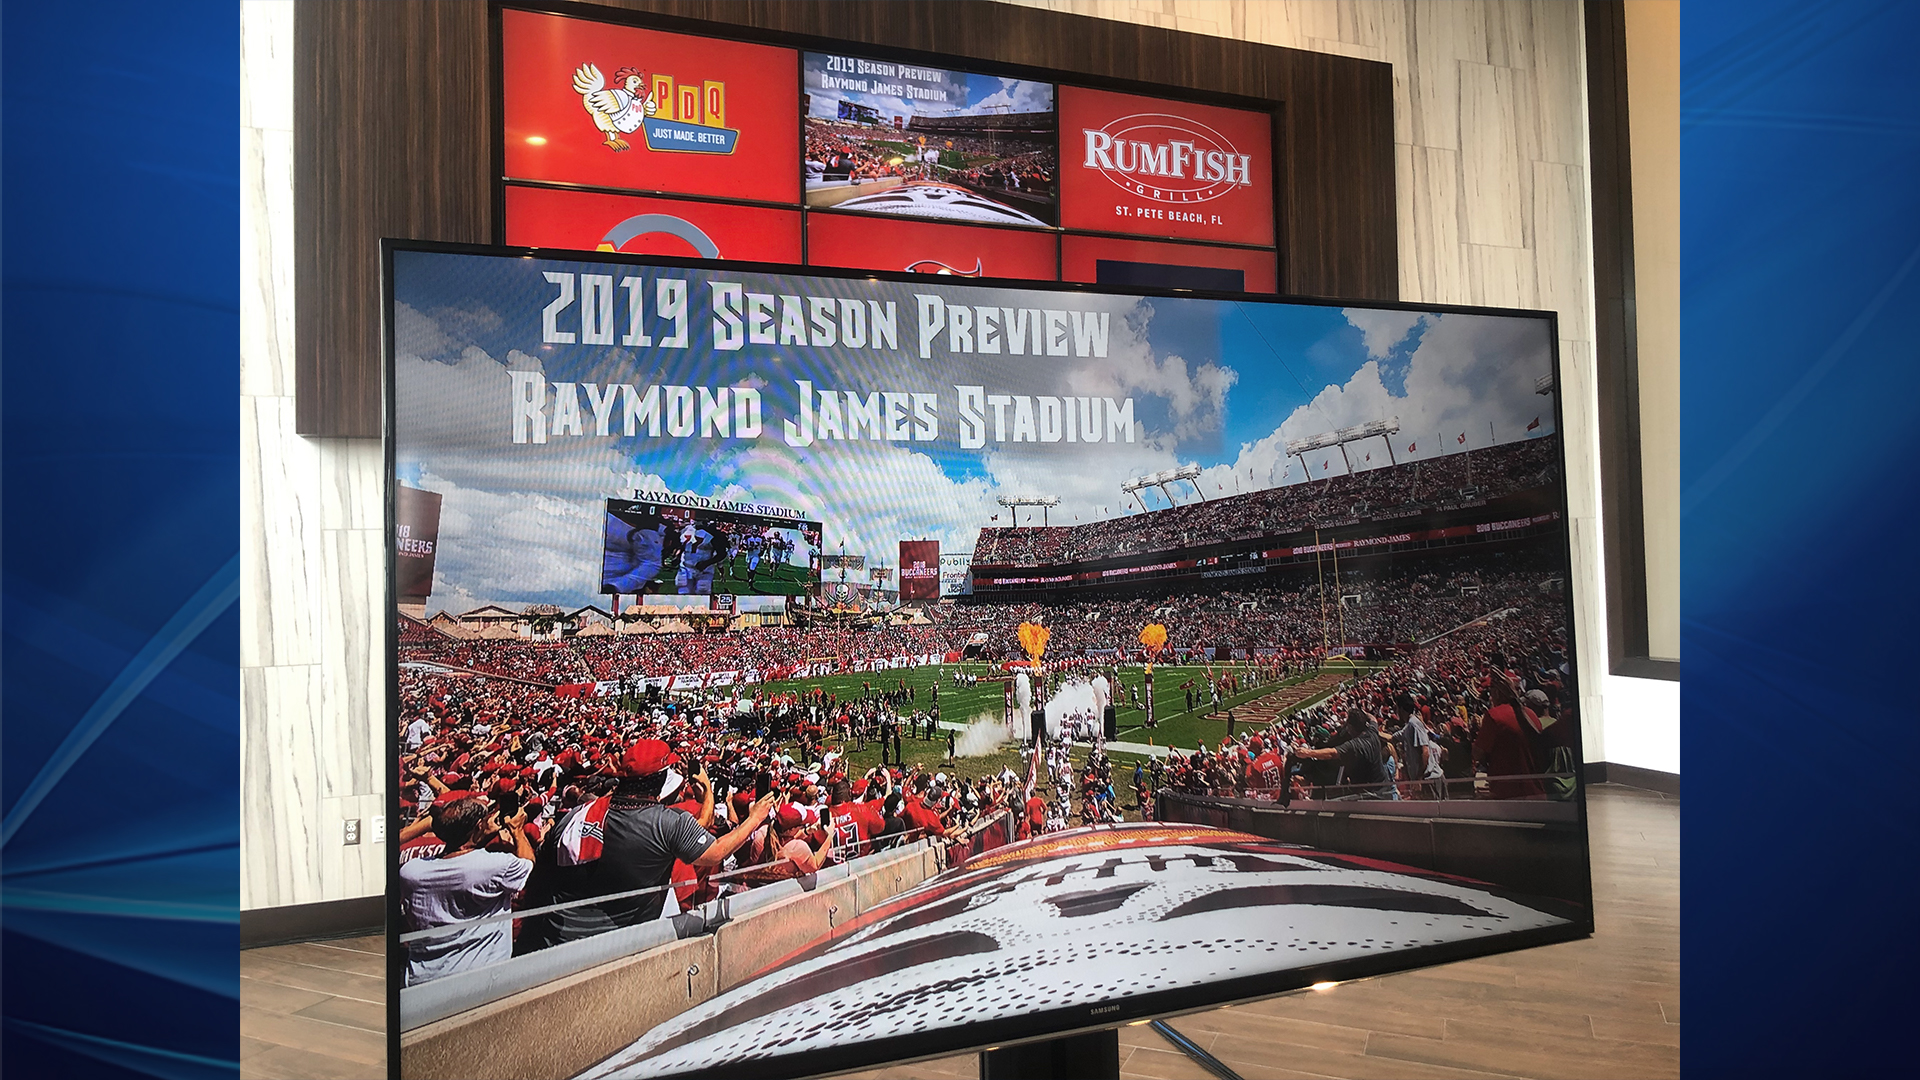 New game day menu available at Raymond James Stadium for